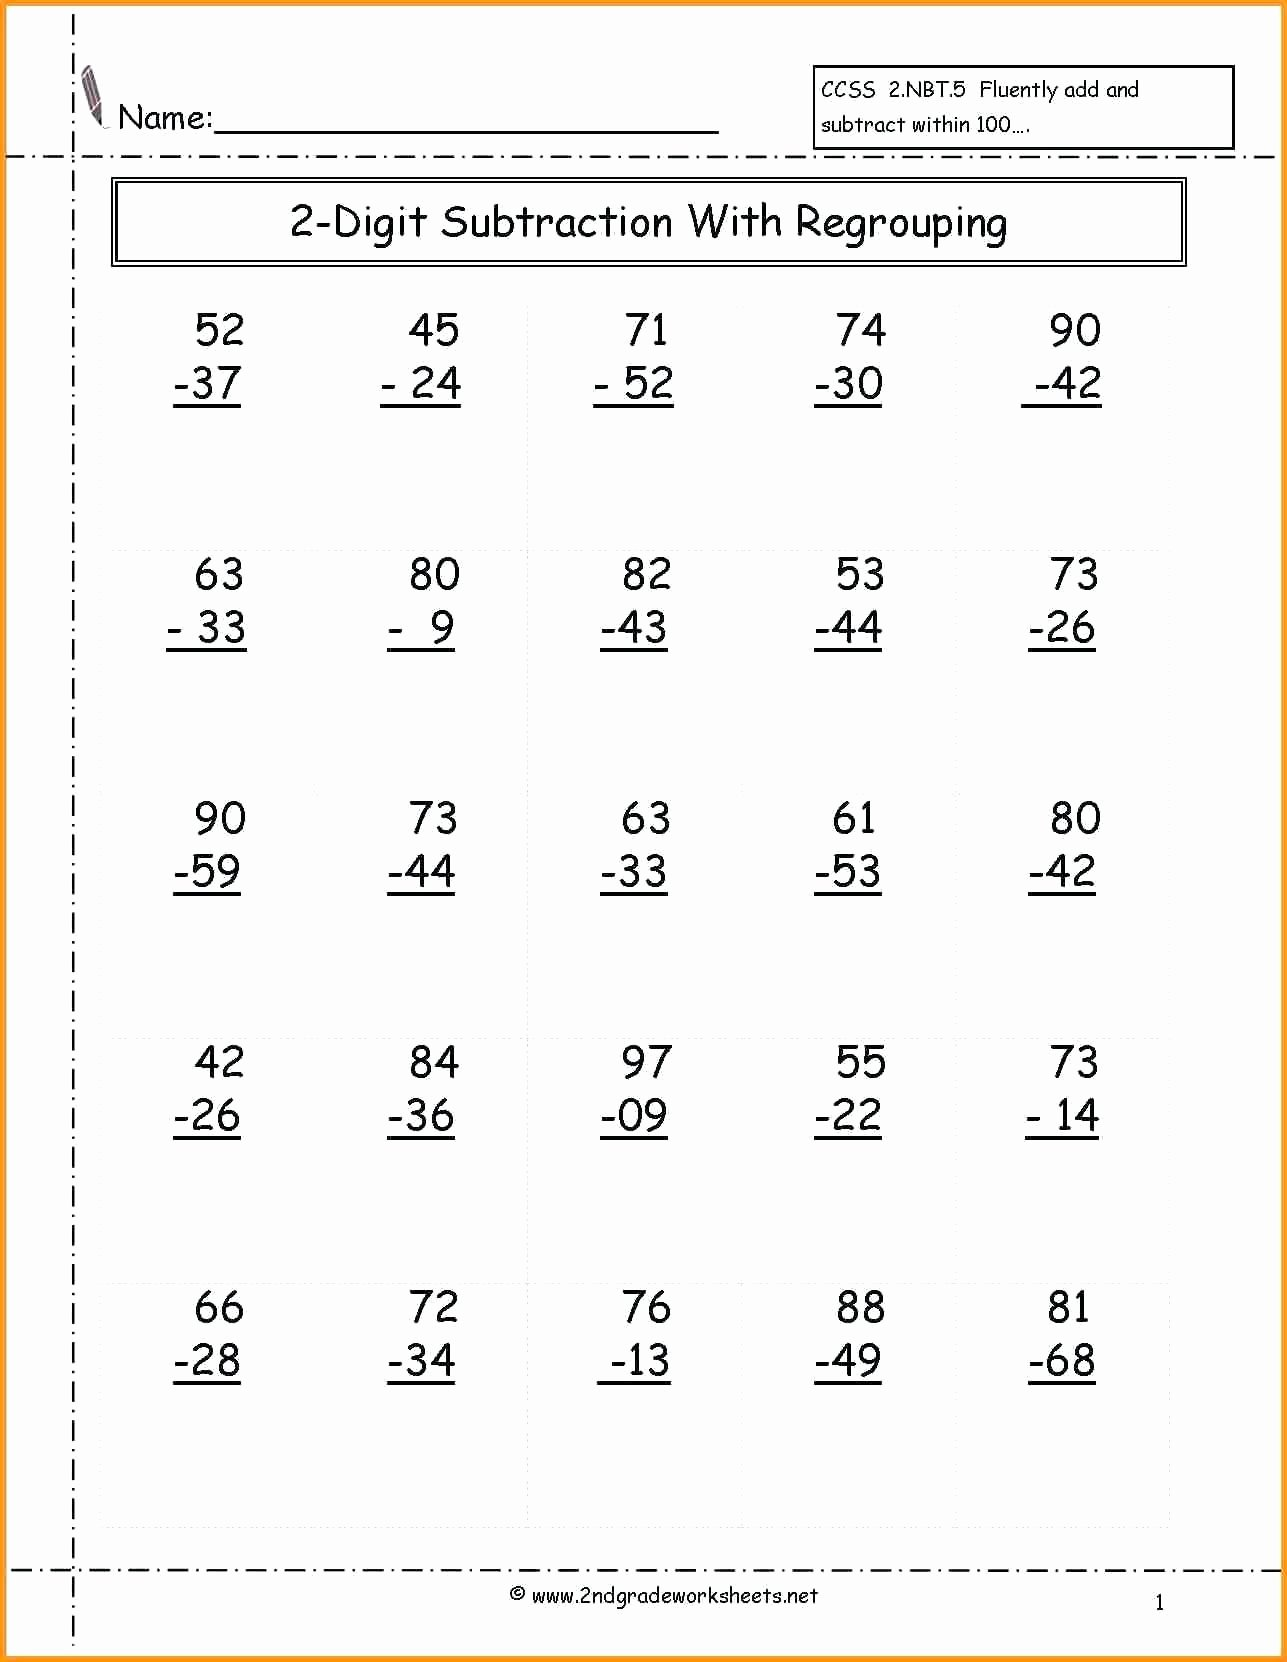 Algebra 2 Worksheet Pdf Lovely 2nd Grade Math Worksheets Pdf Math Worksheet for Kids